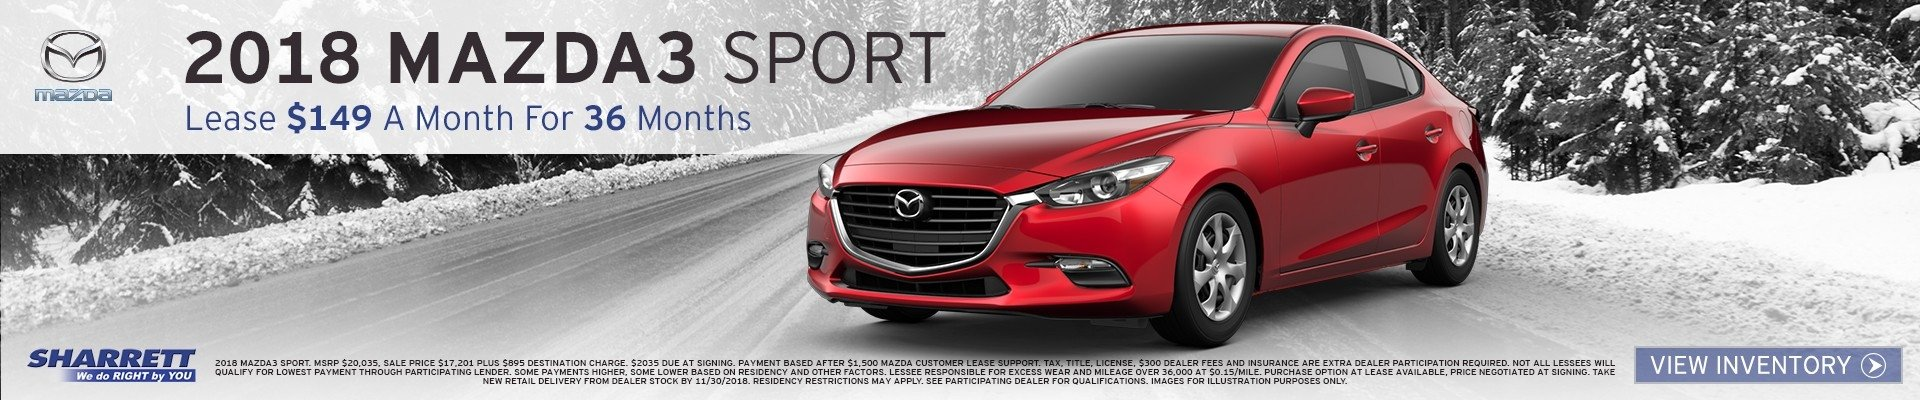 Get a new 2018 Mazda3 Sport for $149/mo for 36 months at Sharrett Mazda